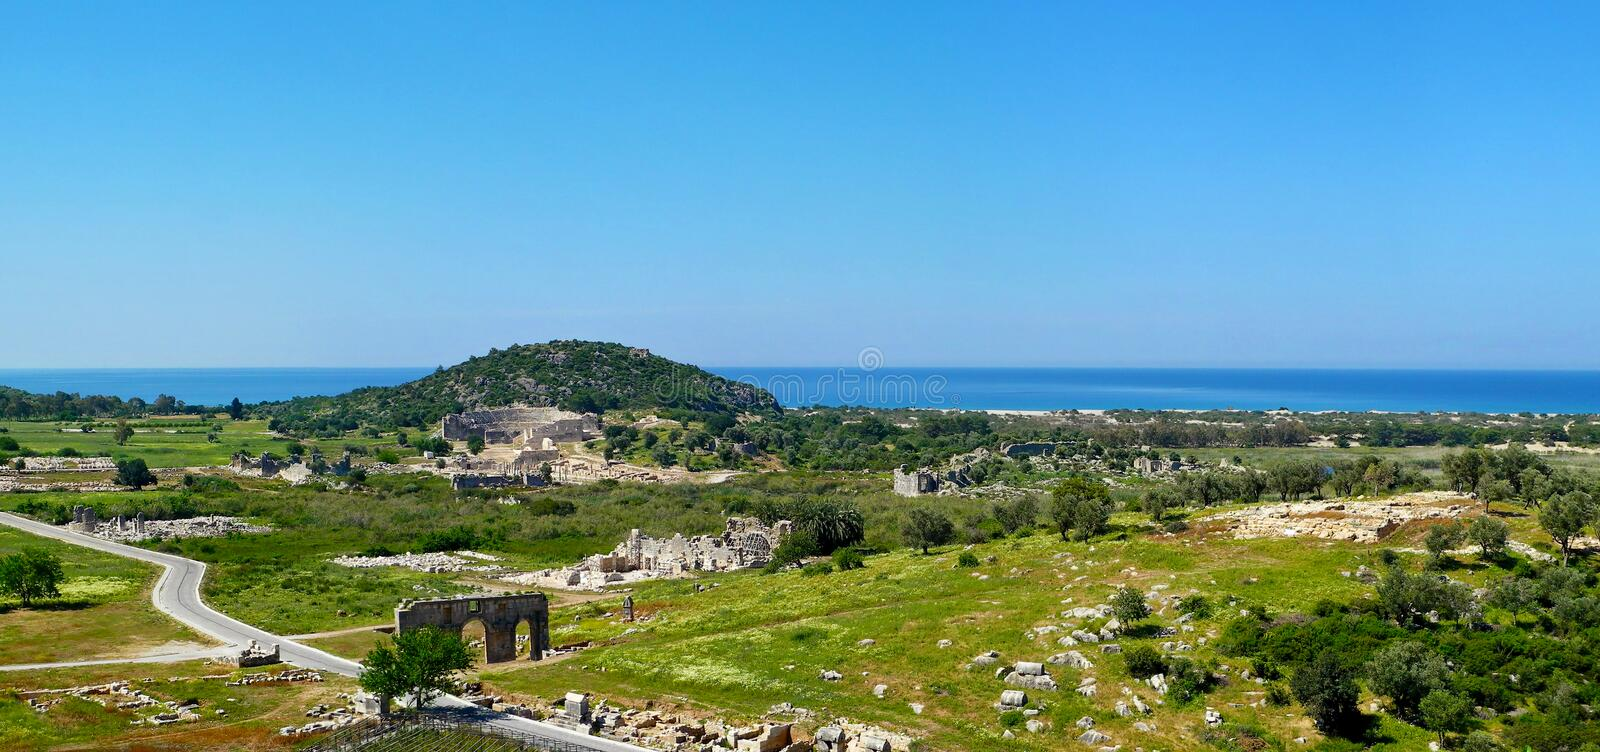 Panoramic view of the antique ruins in Patara, Antalya province, Turkey. stock photography